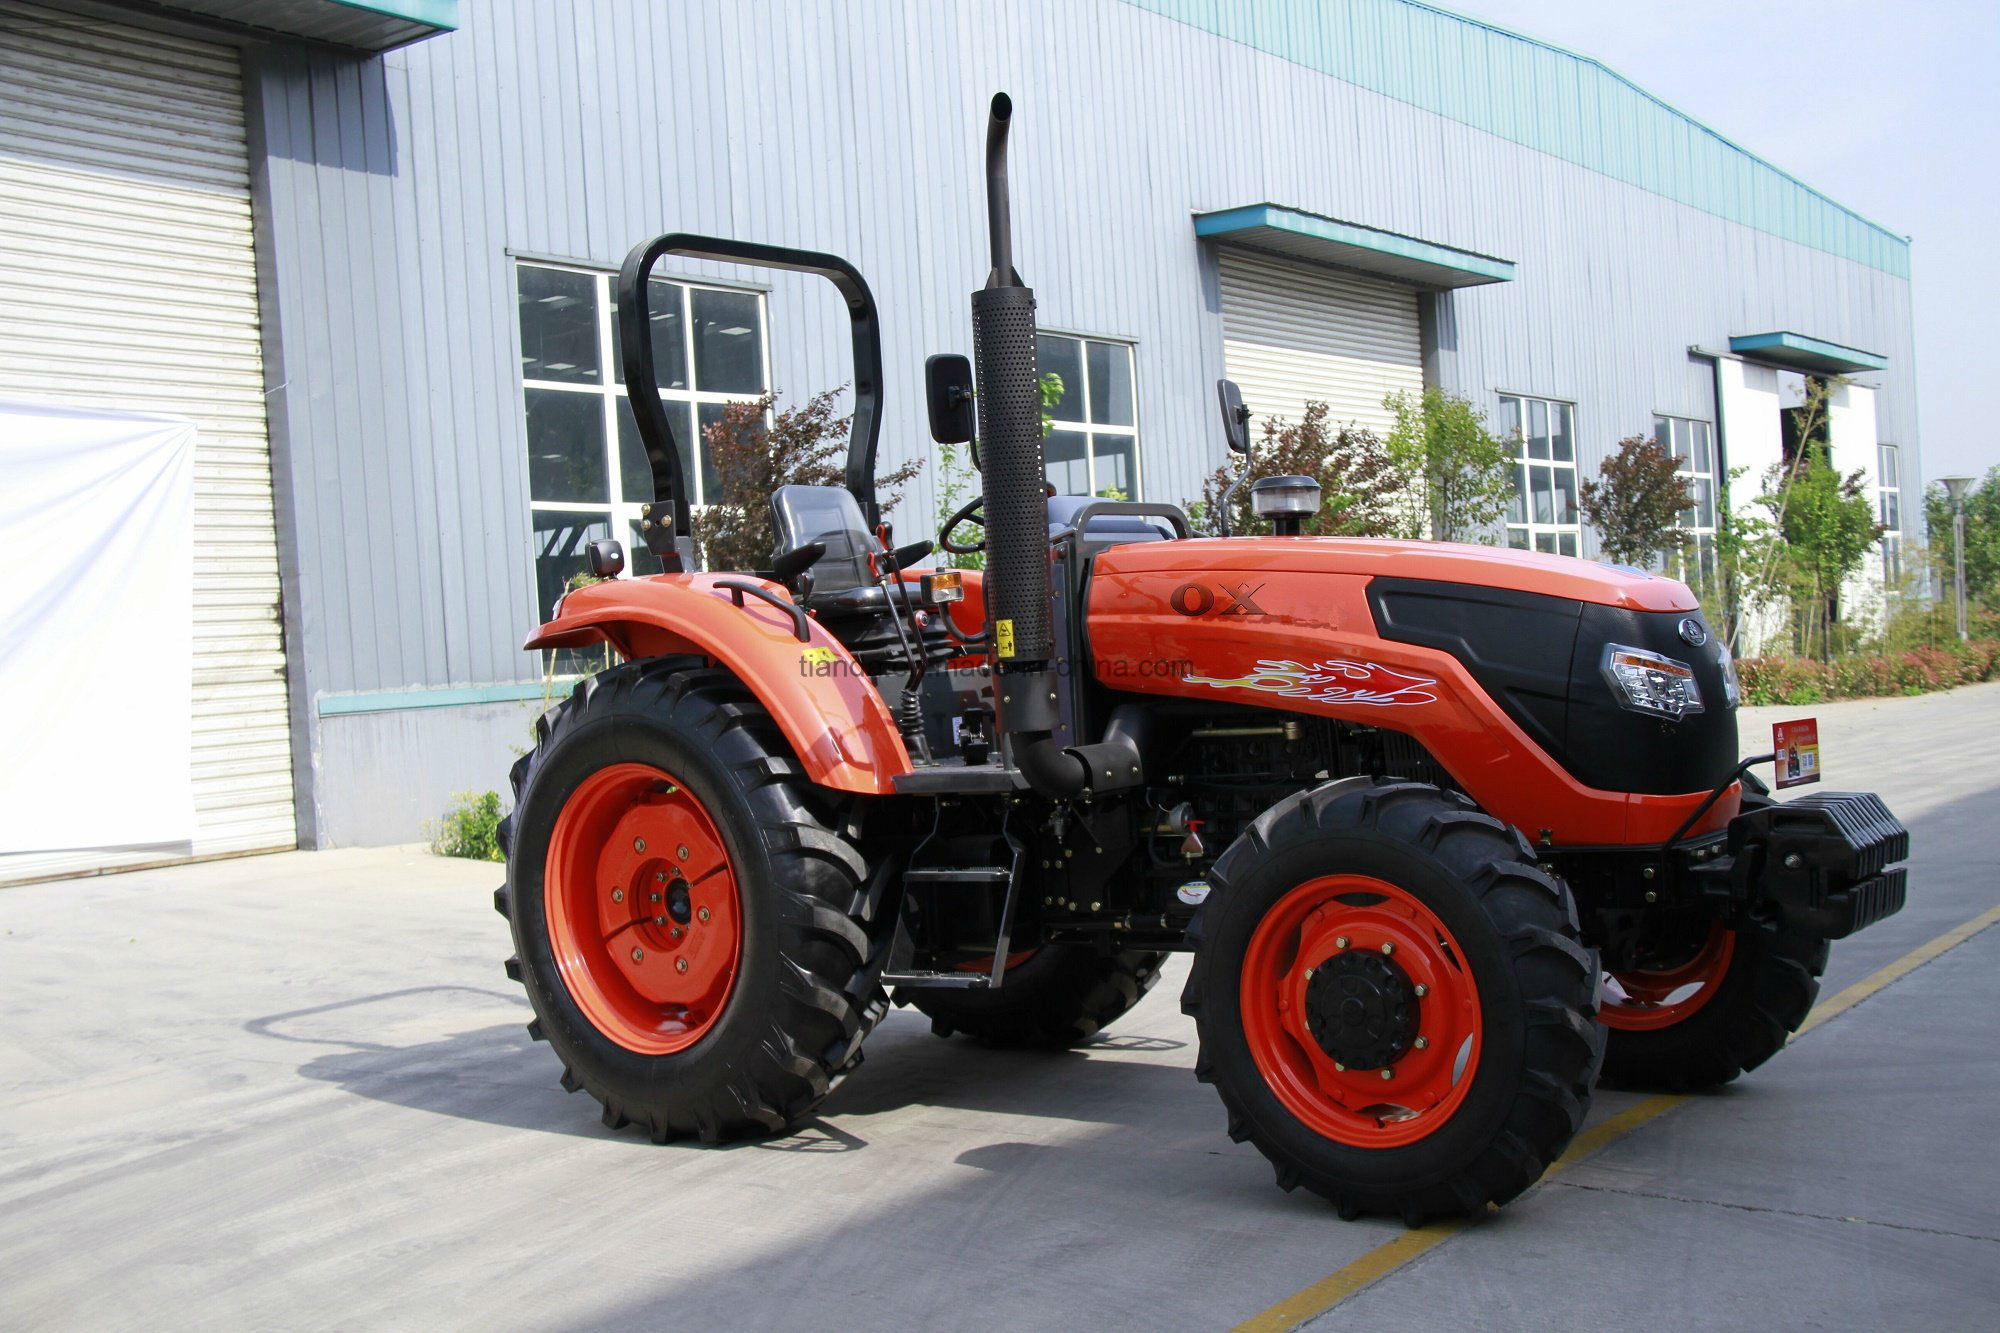 New 55HP Four-Wheel Driving Wheel Tractor with Diesel Engine Kubota Type (OX554)